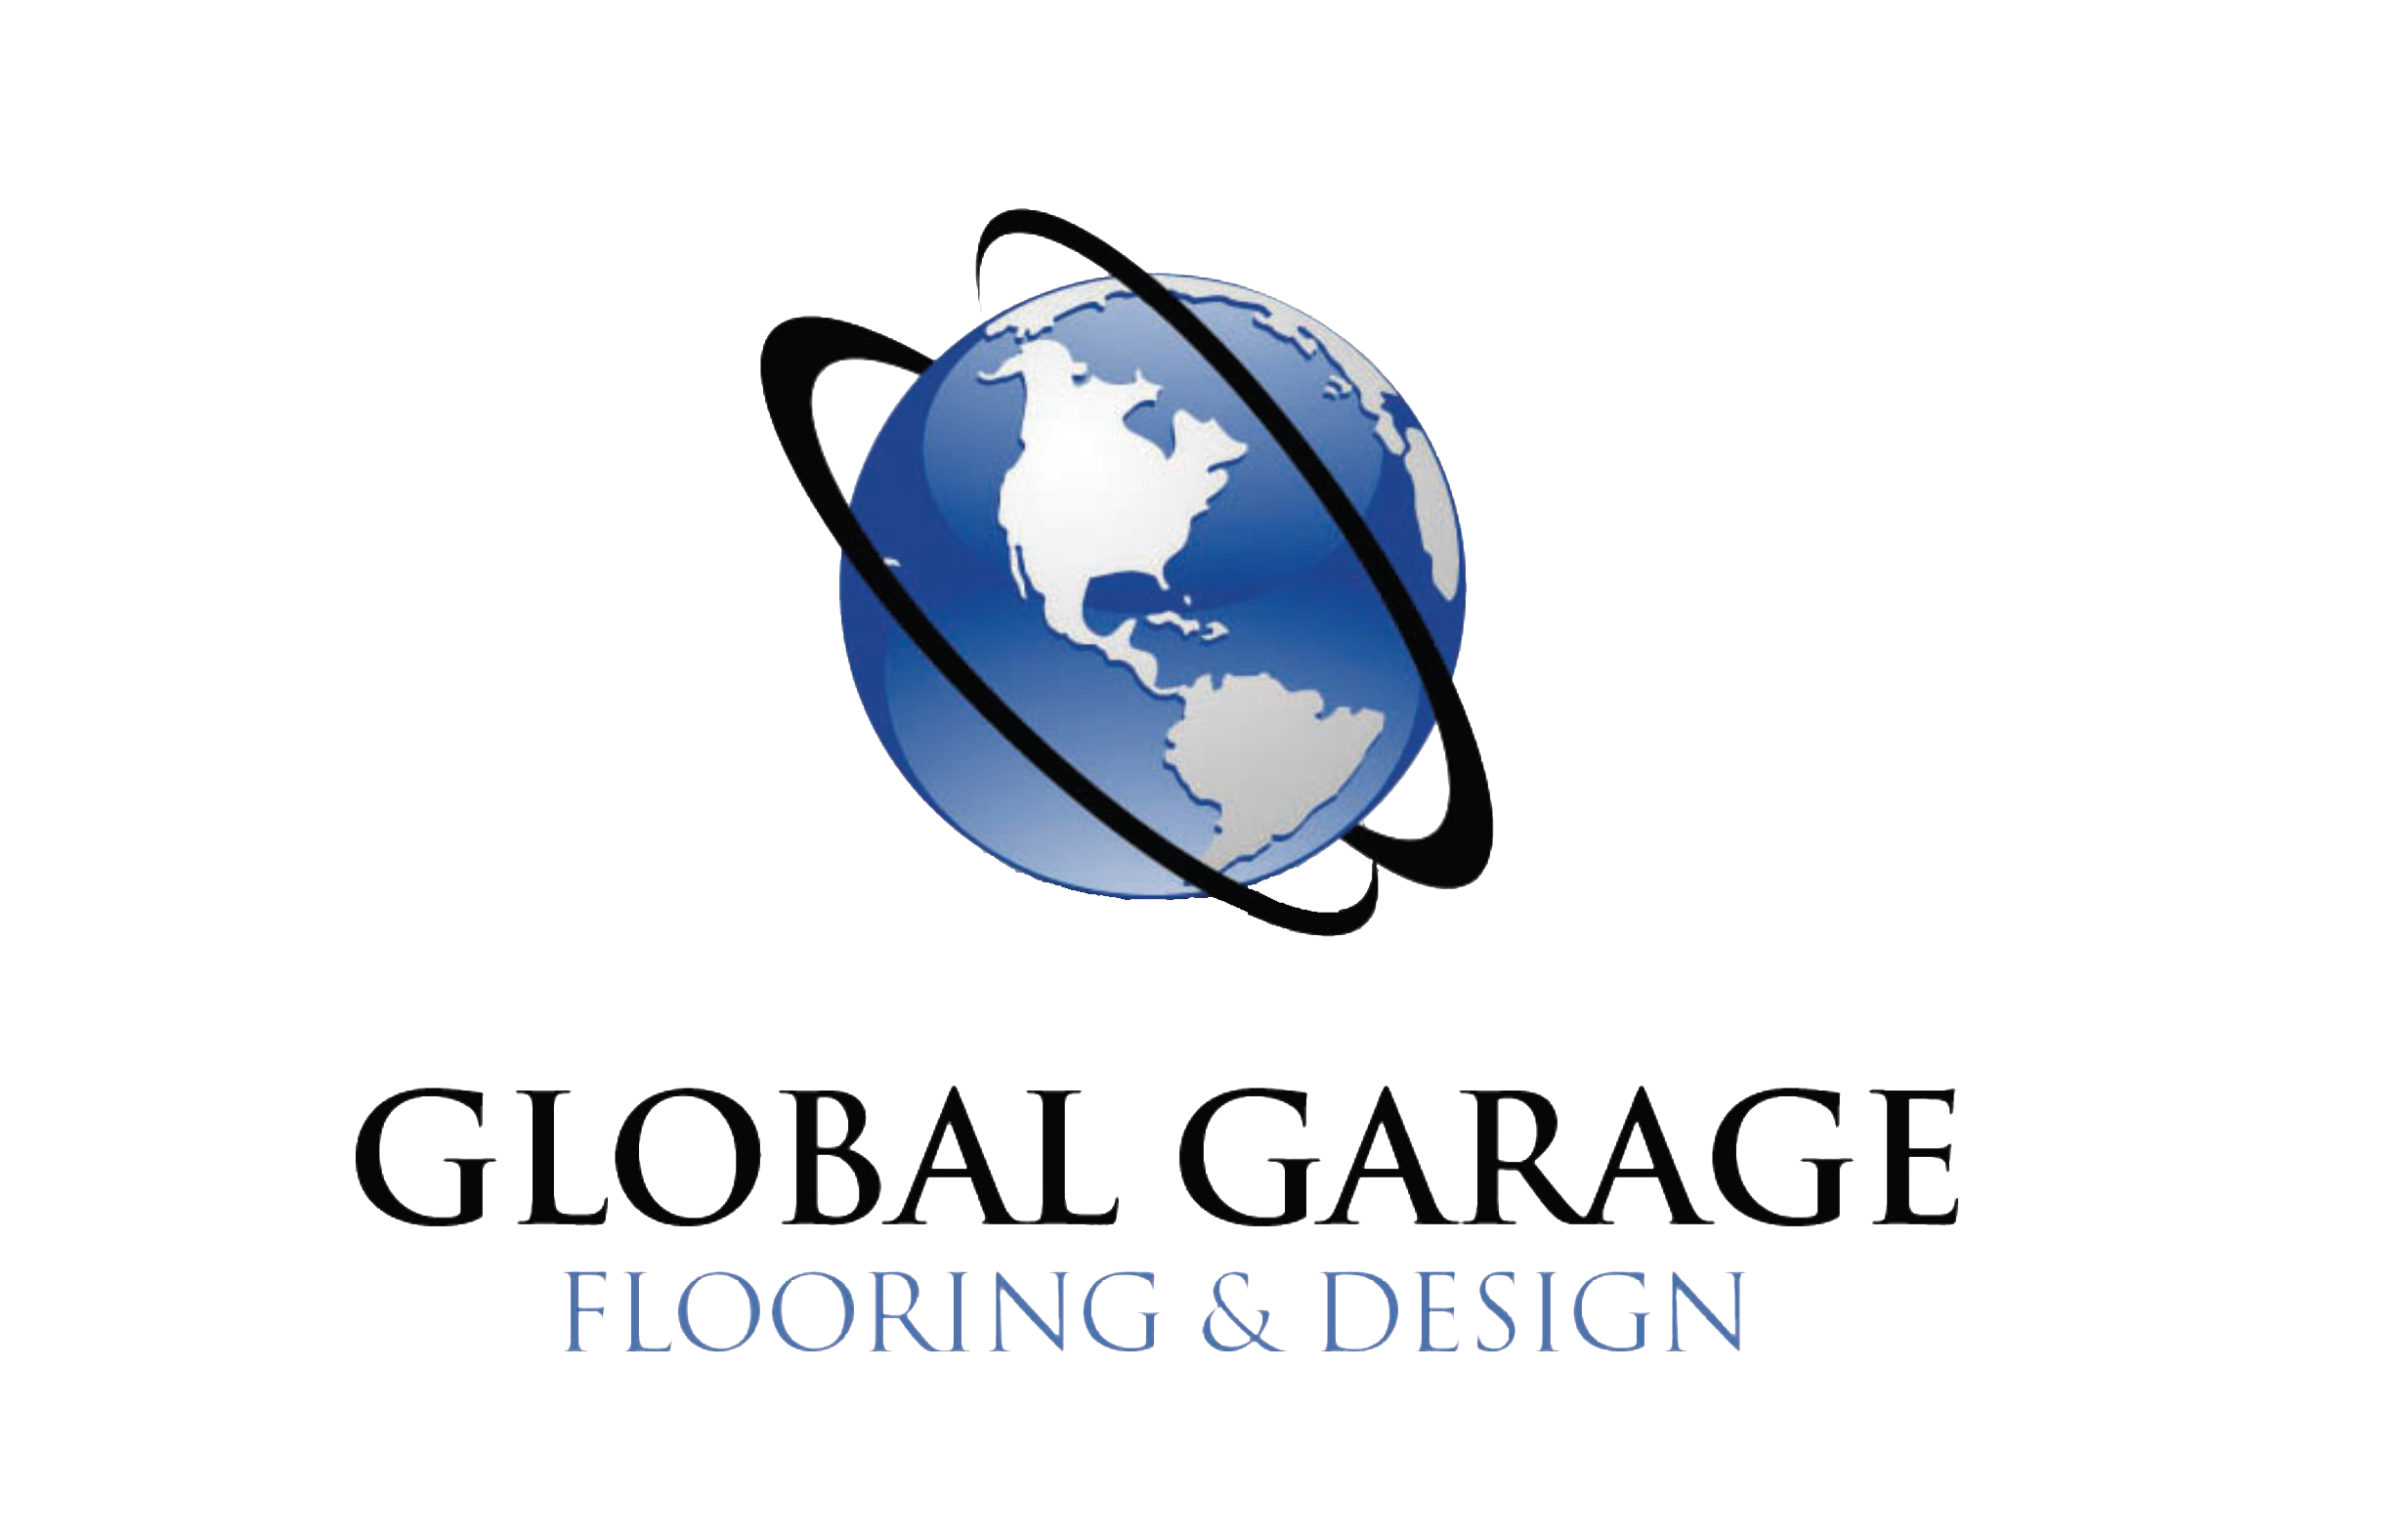 Global Garage Flooring Design To Partner With The